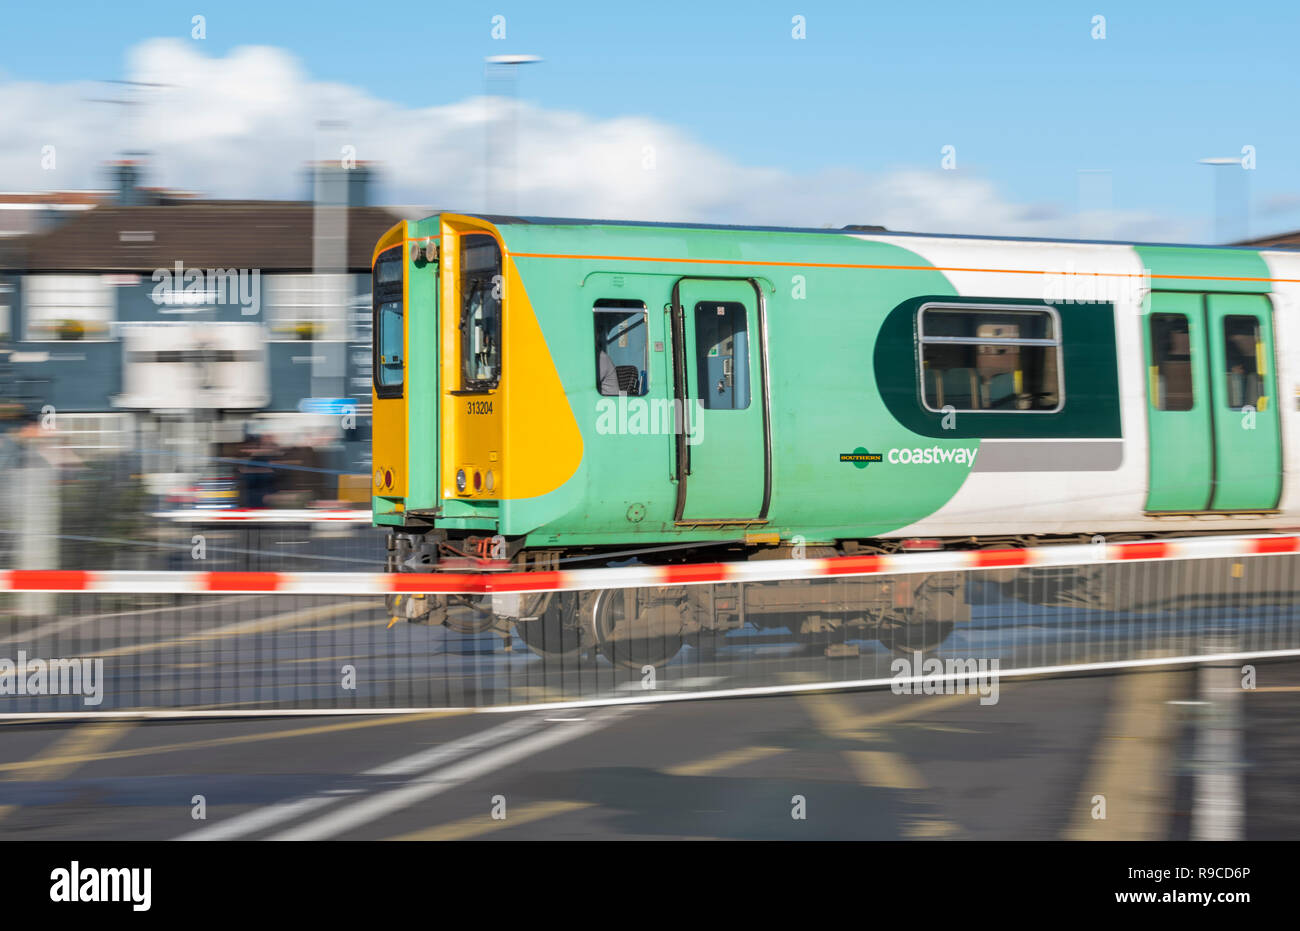 Southern Rail Coastway Class 313 locomotive and train on a level crossing in West Sussex, England, UK. Class 313 loco. - Stock Image